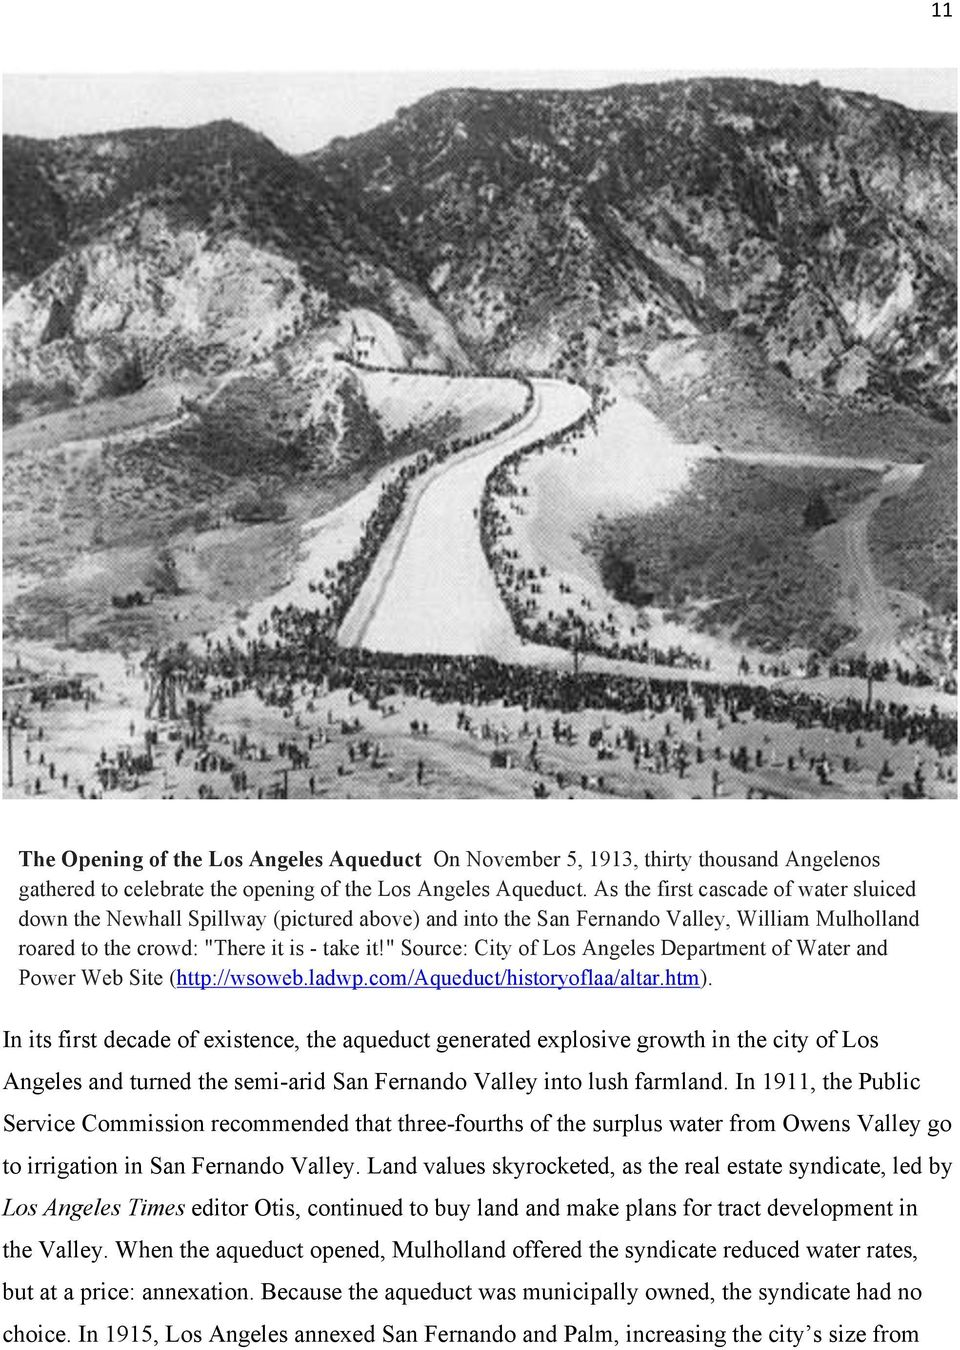 """ Source: City of Los Angeles Department of Water and Power Web Site (http://wsoweb.ladwp.com/aqueduct/historyoflaa/altar.htm)."